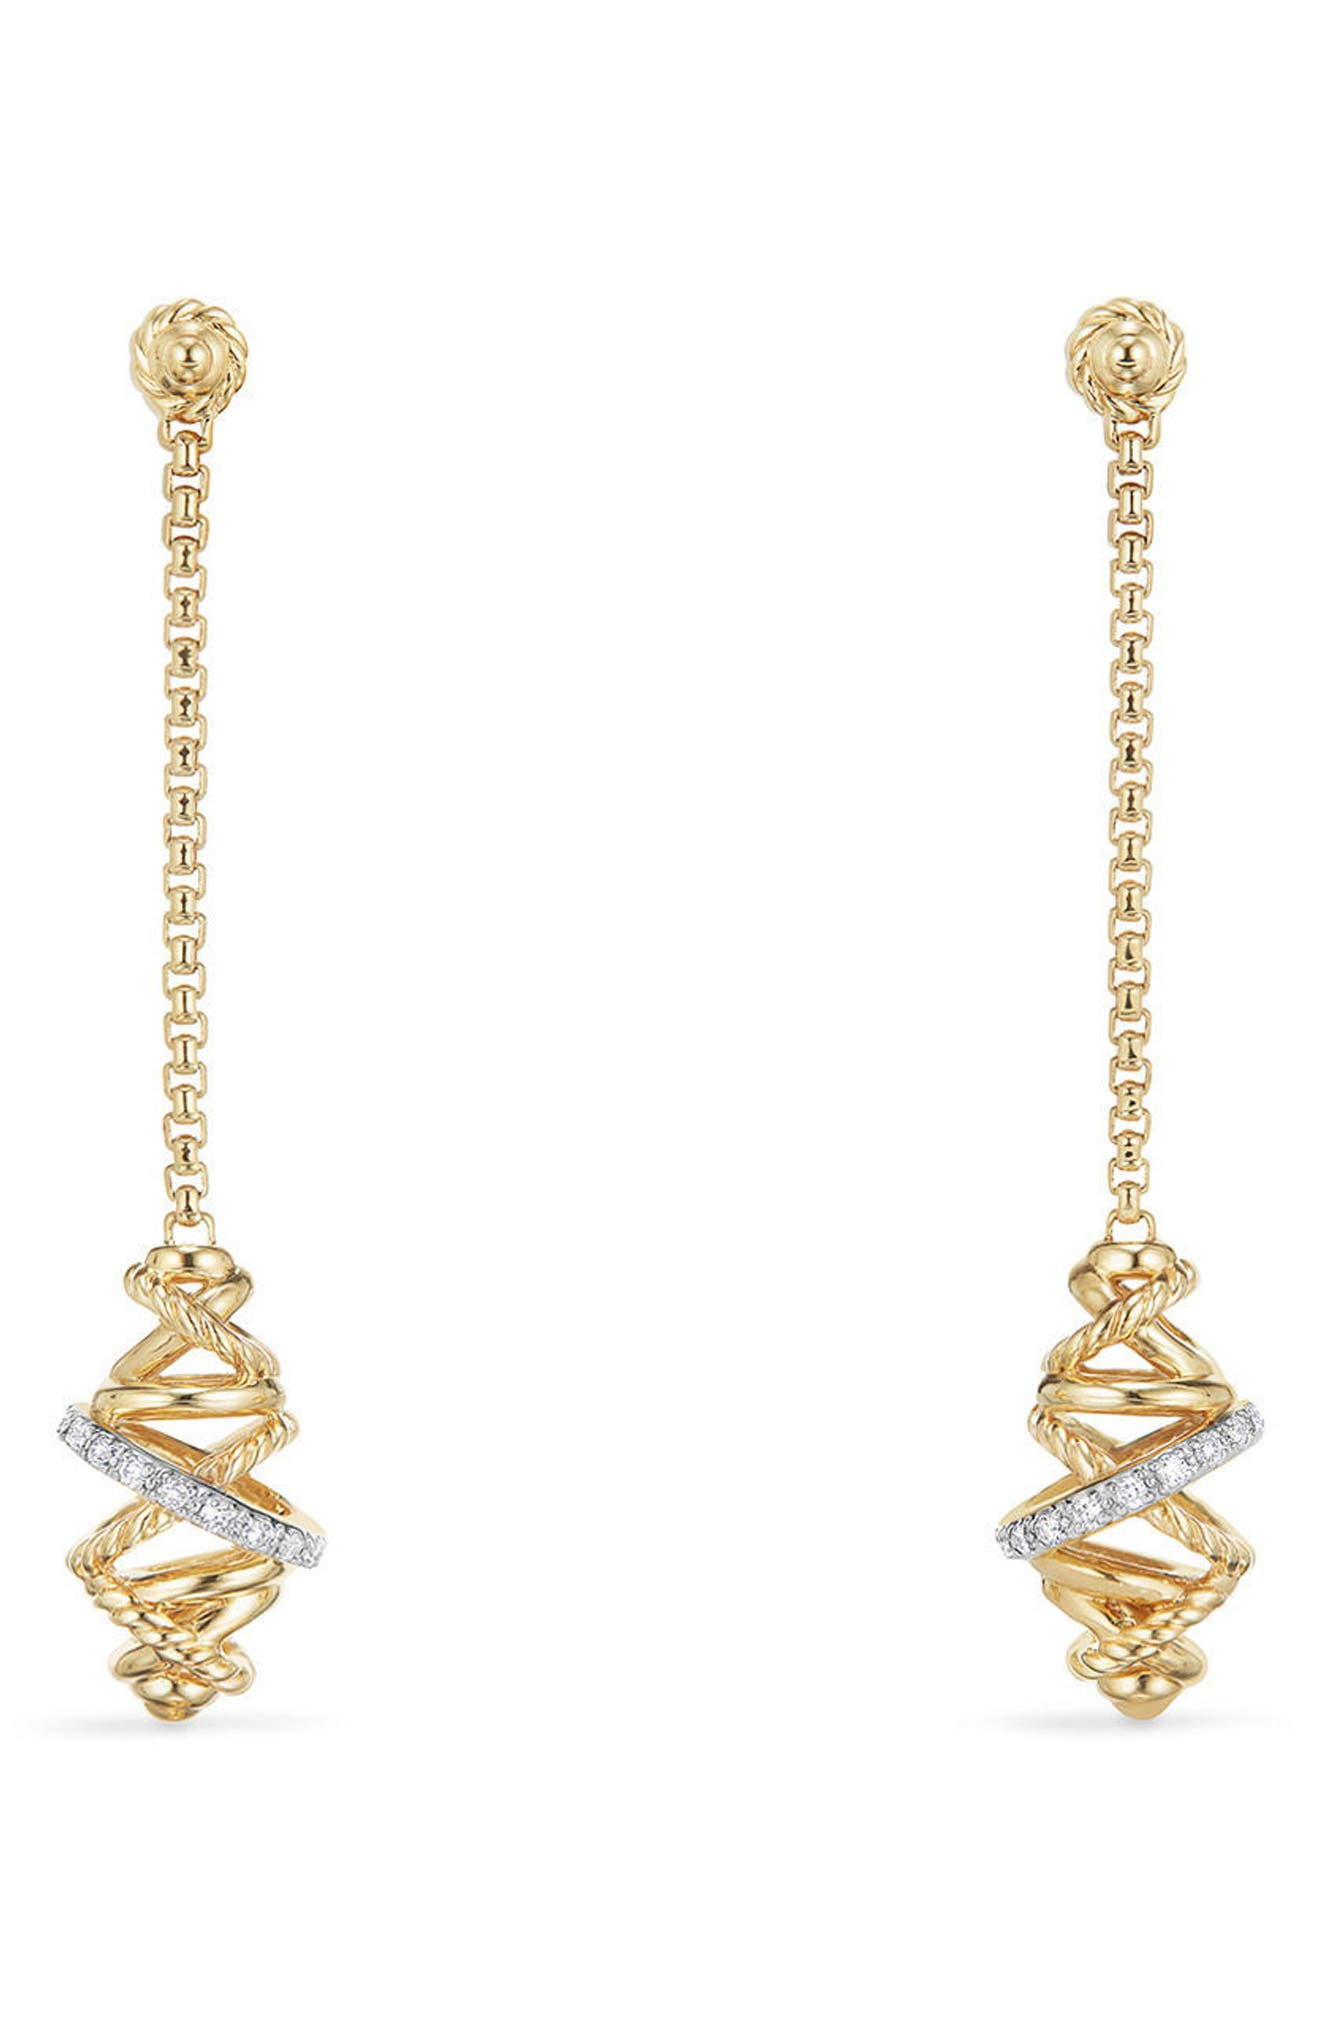 DAVID YURMAN Crossover Chain Drop Earrings with Diamonds in 18K Gold